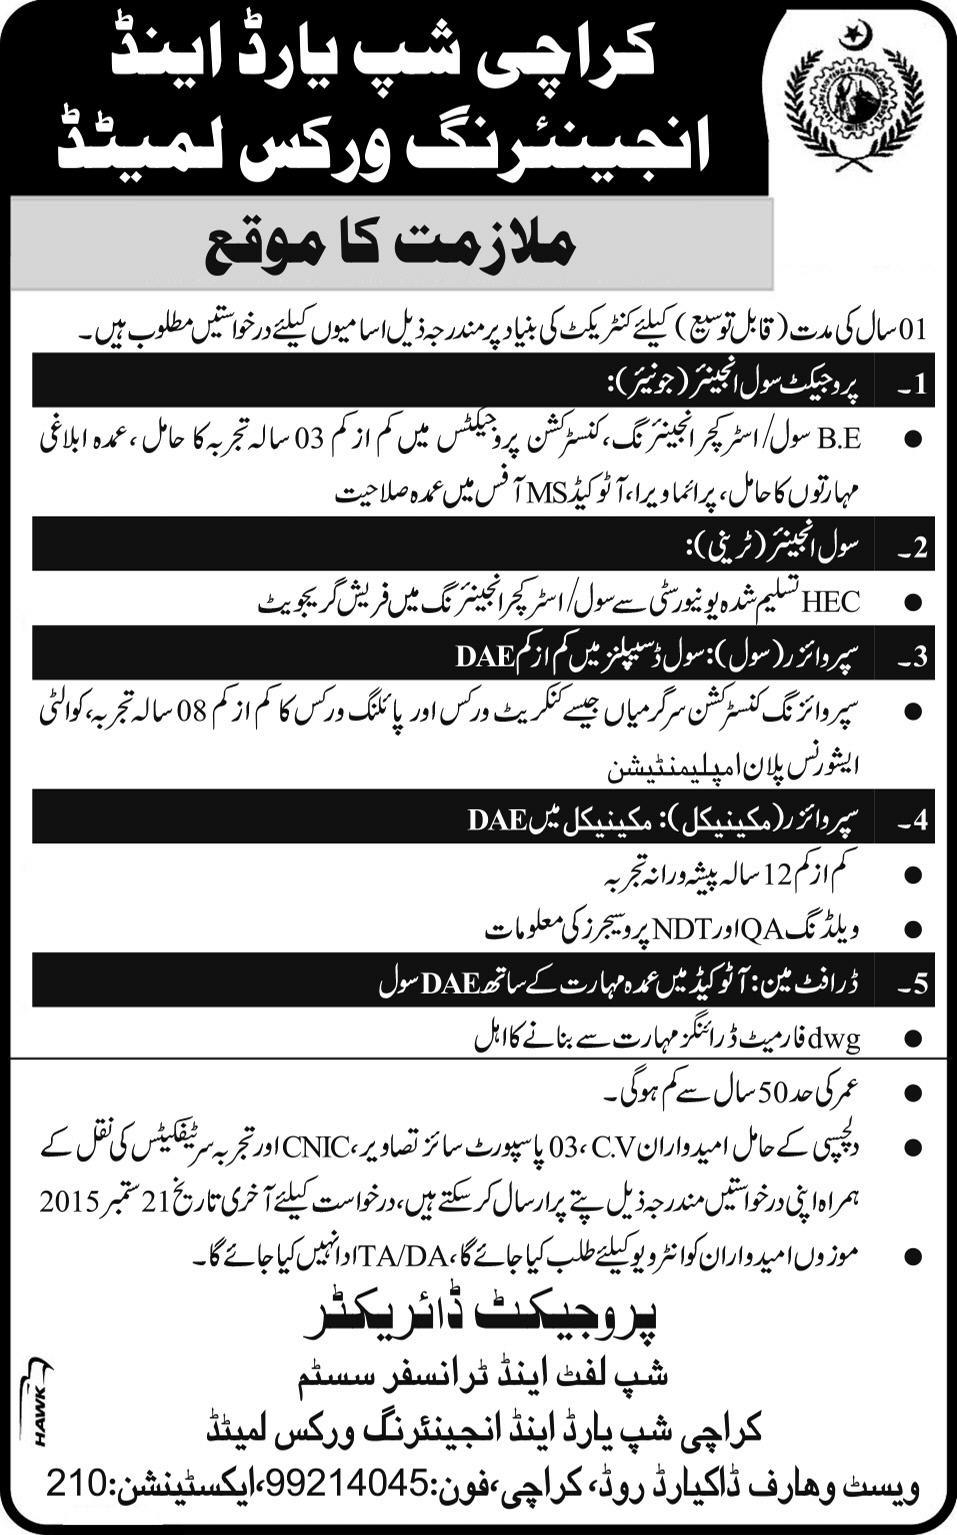 Karachi Shipyard Jobs 2015 September Civil Mechanical Engineers Draftsman Latest In Karachi